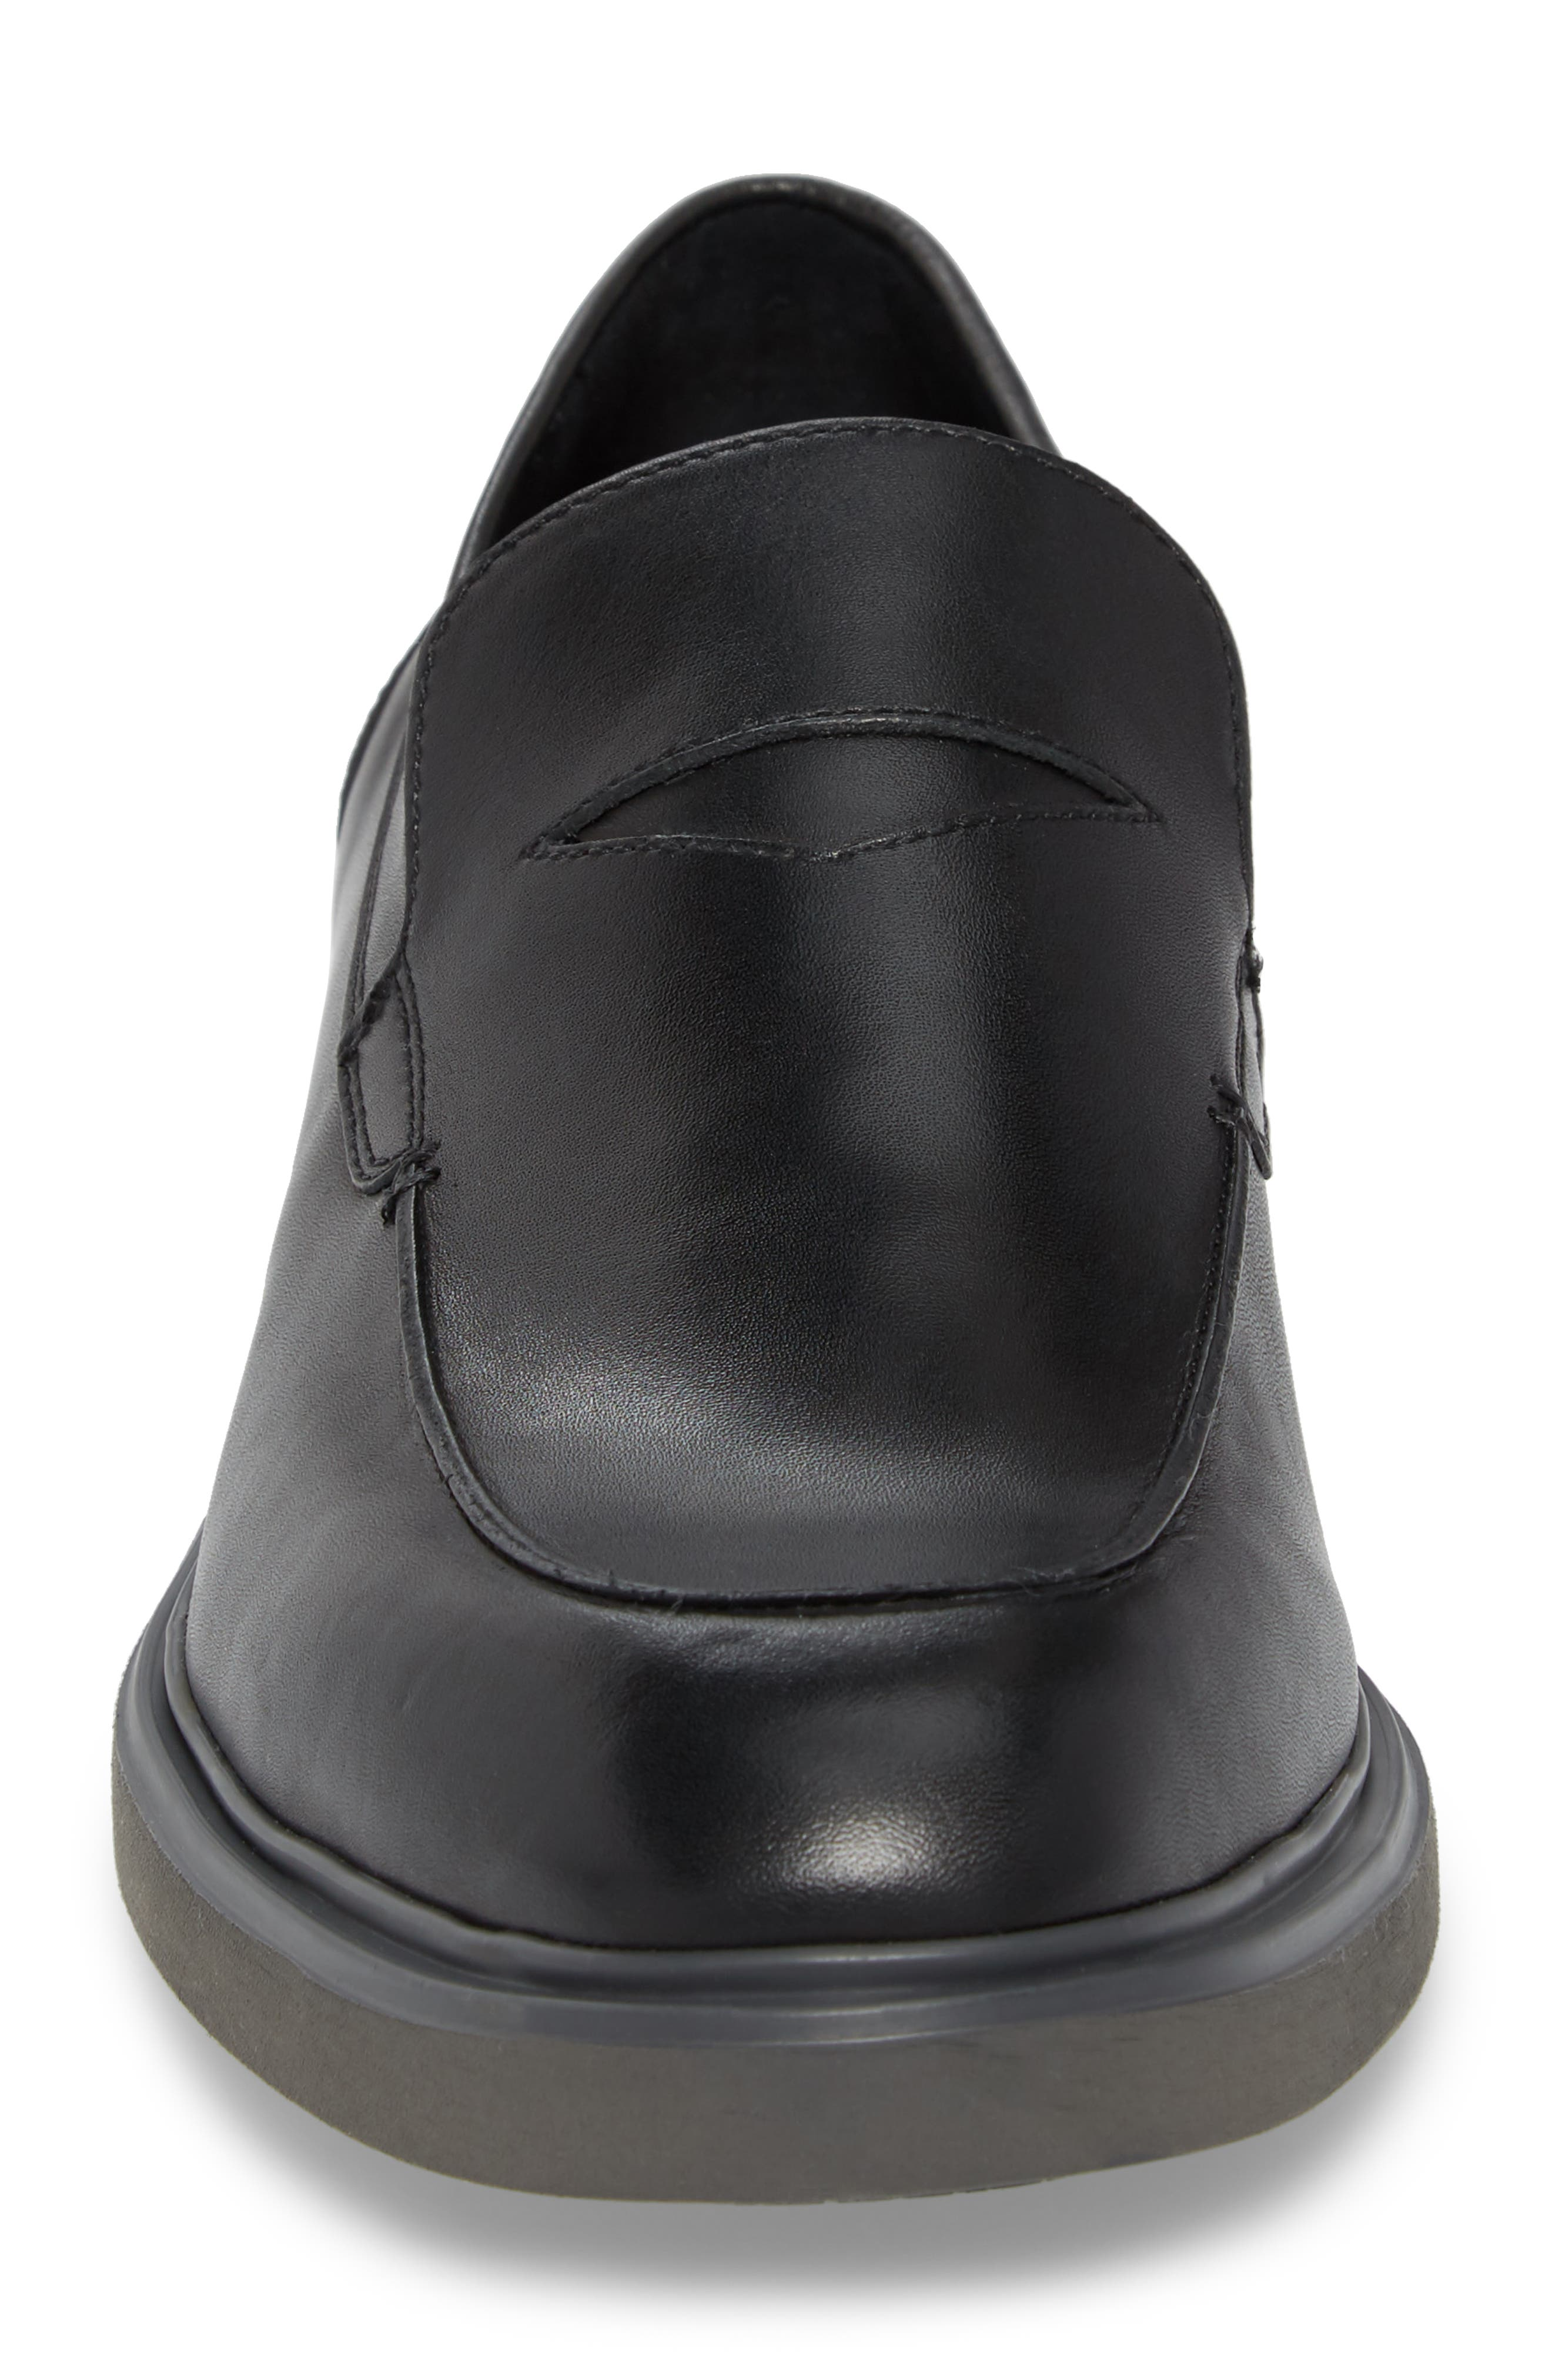 Edwyn Deconstructed Penny Loafer,                             Alternate thumbnail 4, color,                             Black Leather